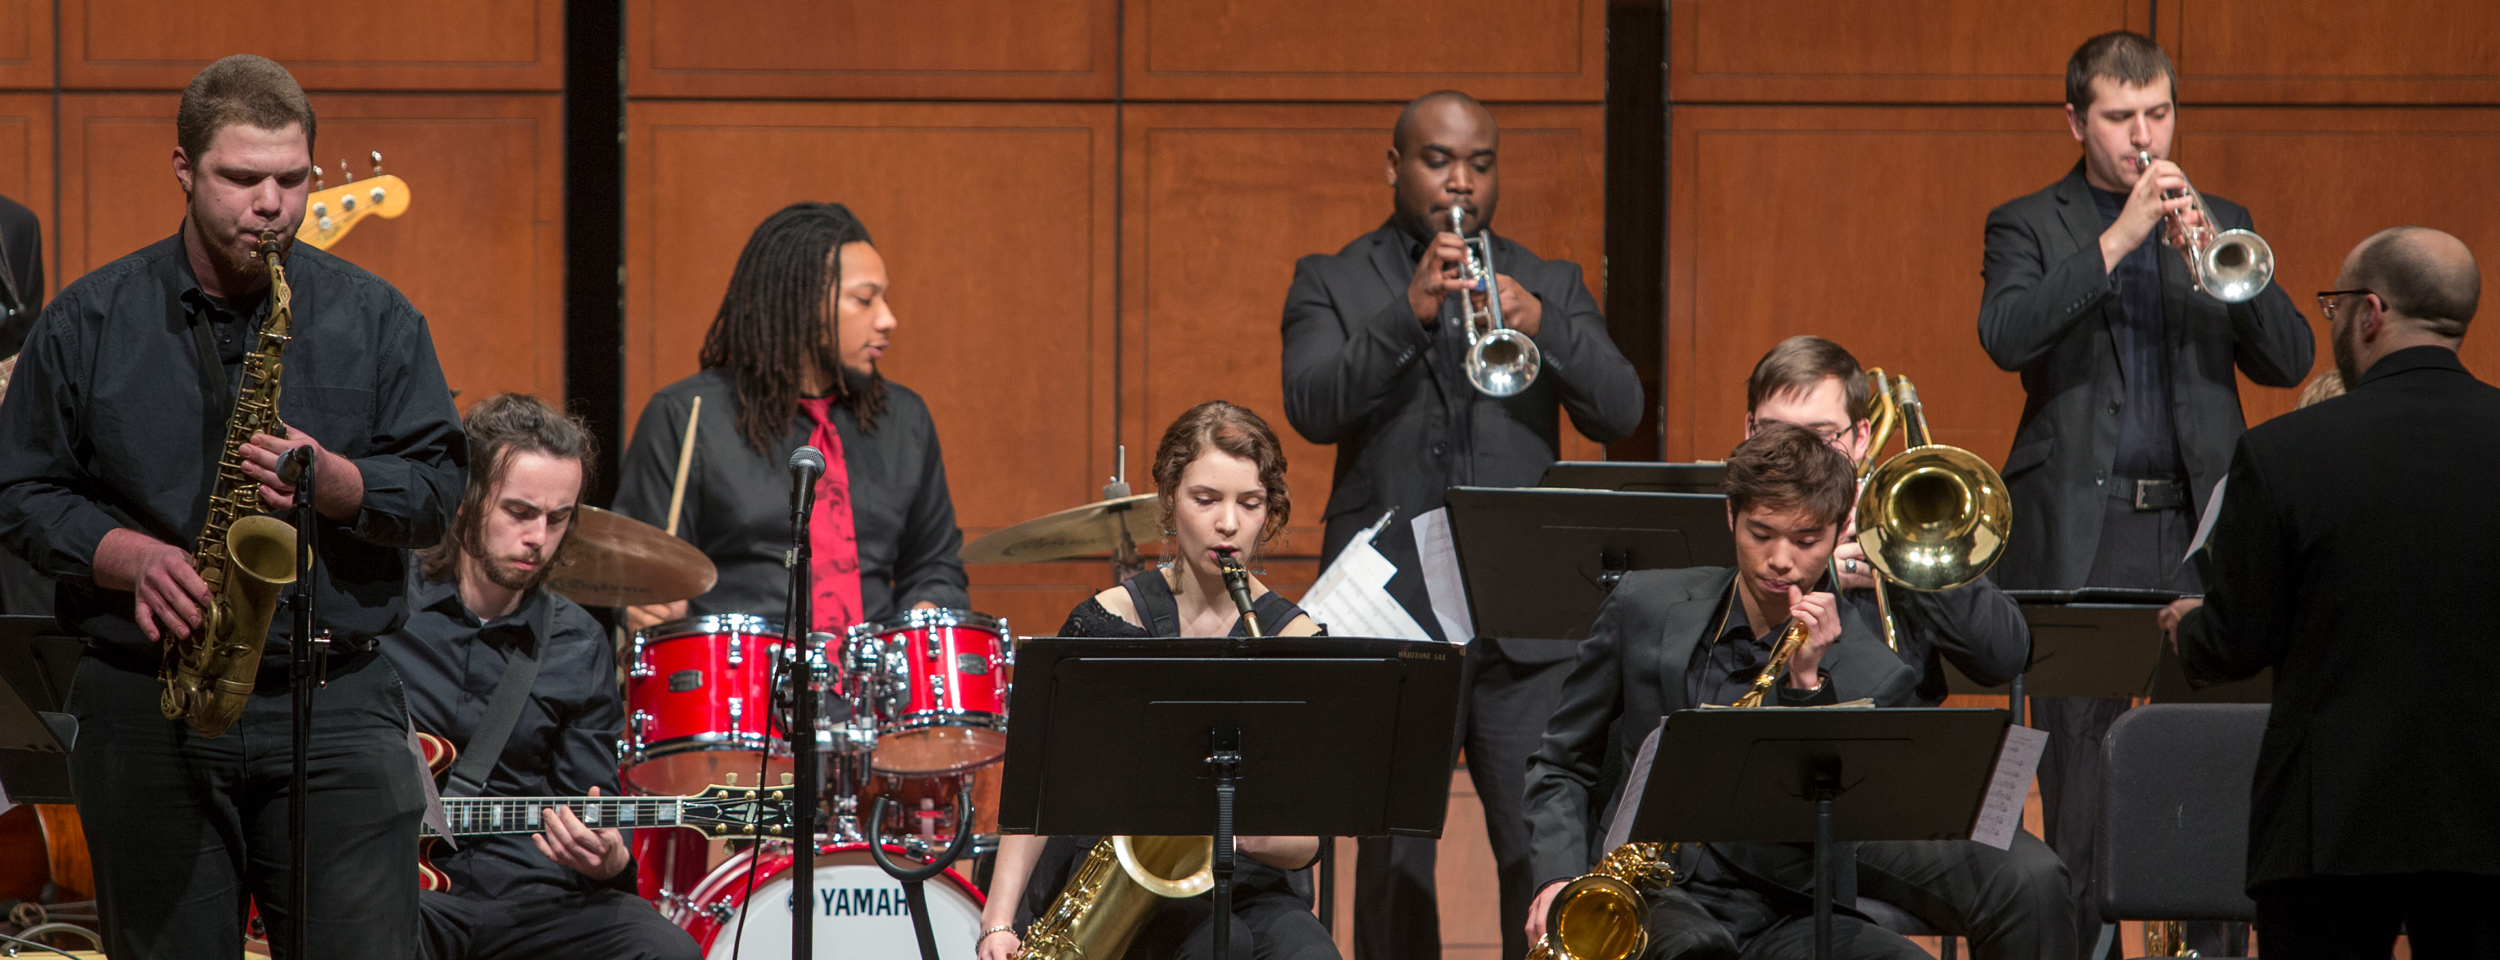 The CCM Jazz Orchestra performs under the direction of Professor Scott Belck at the 2016 Moveable Feast gala fundraiser. Photo/UC Creative Services.